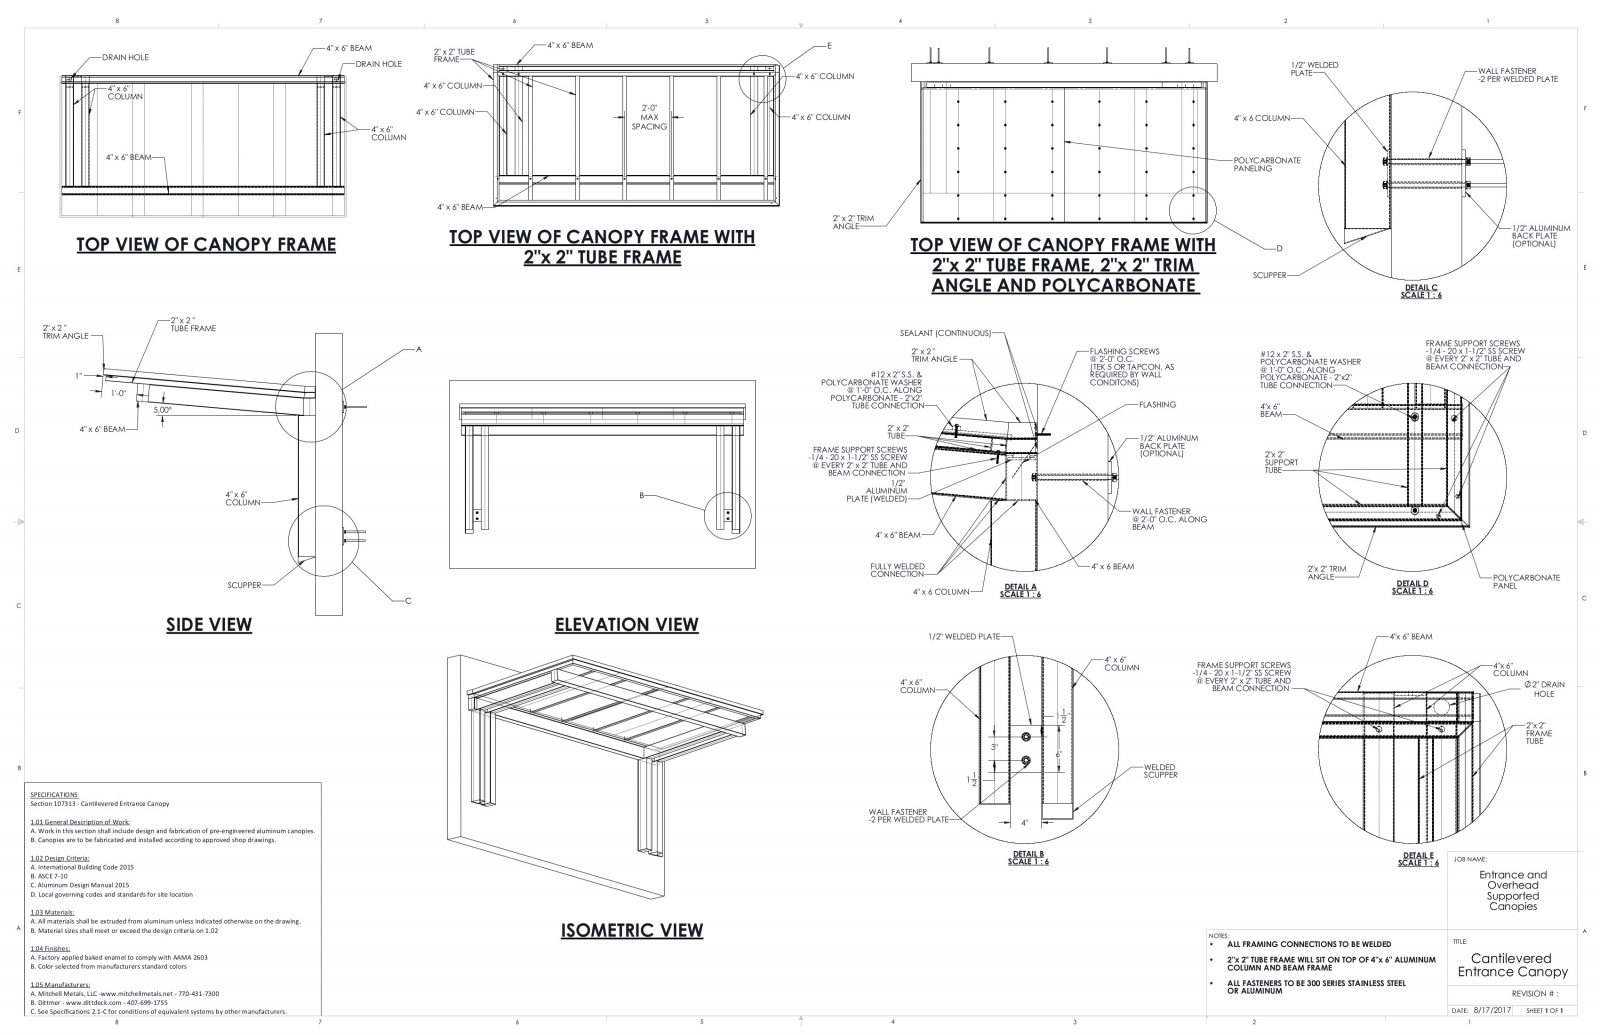 Entrance / Overhead Canopy Details | Commercial Metal Canopy Drawings